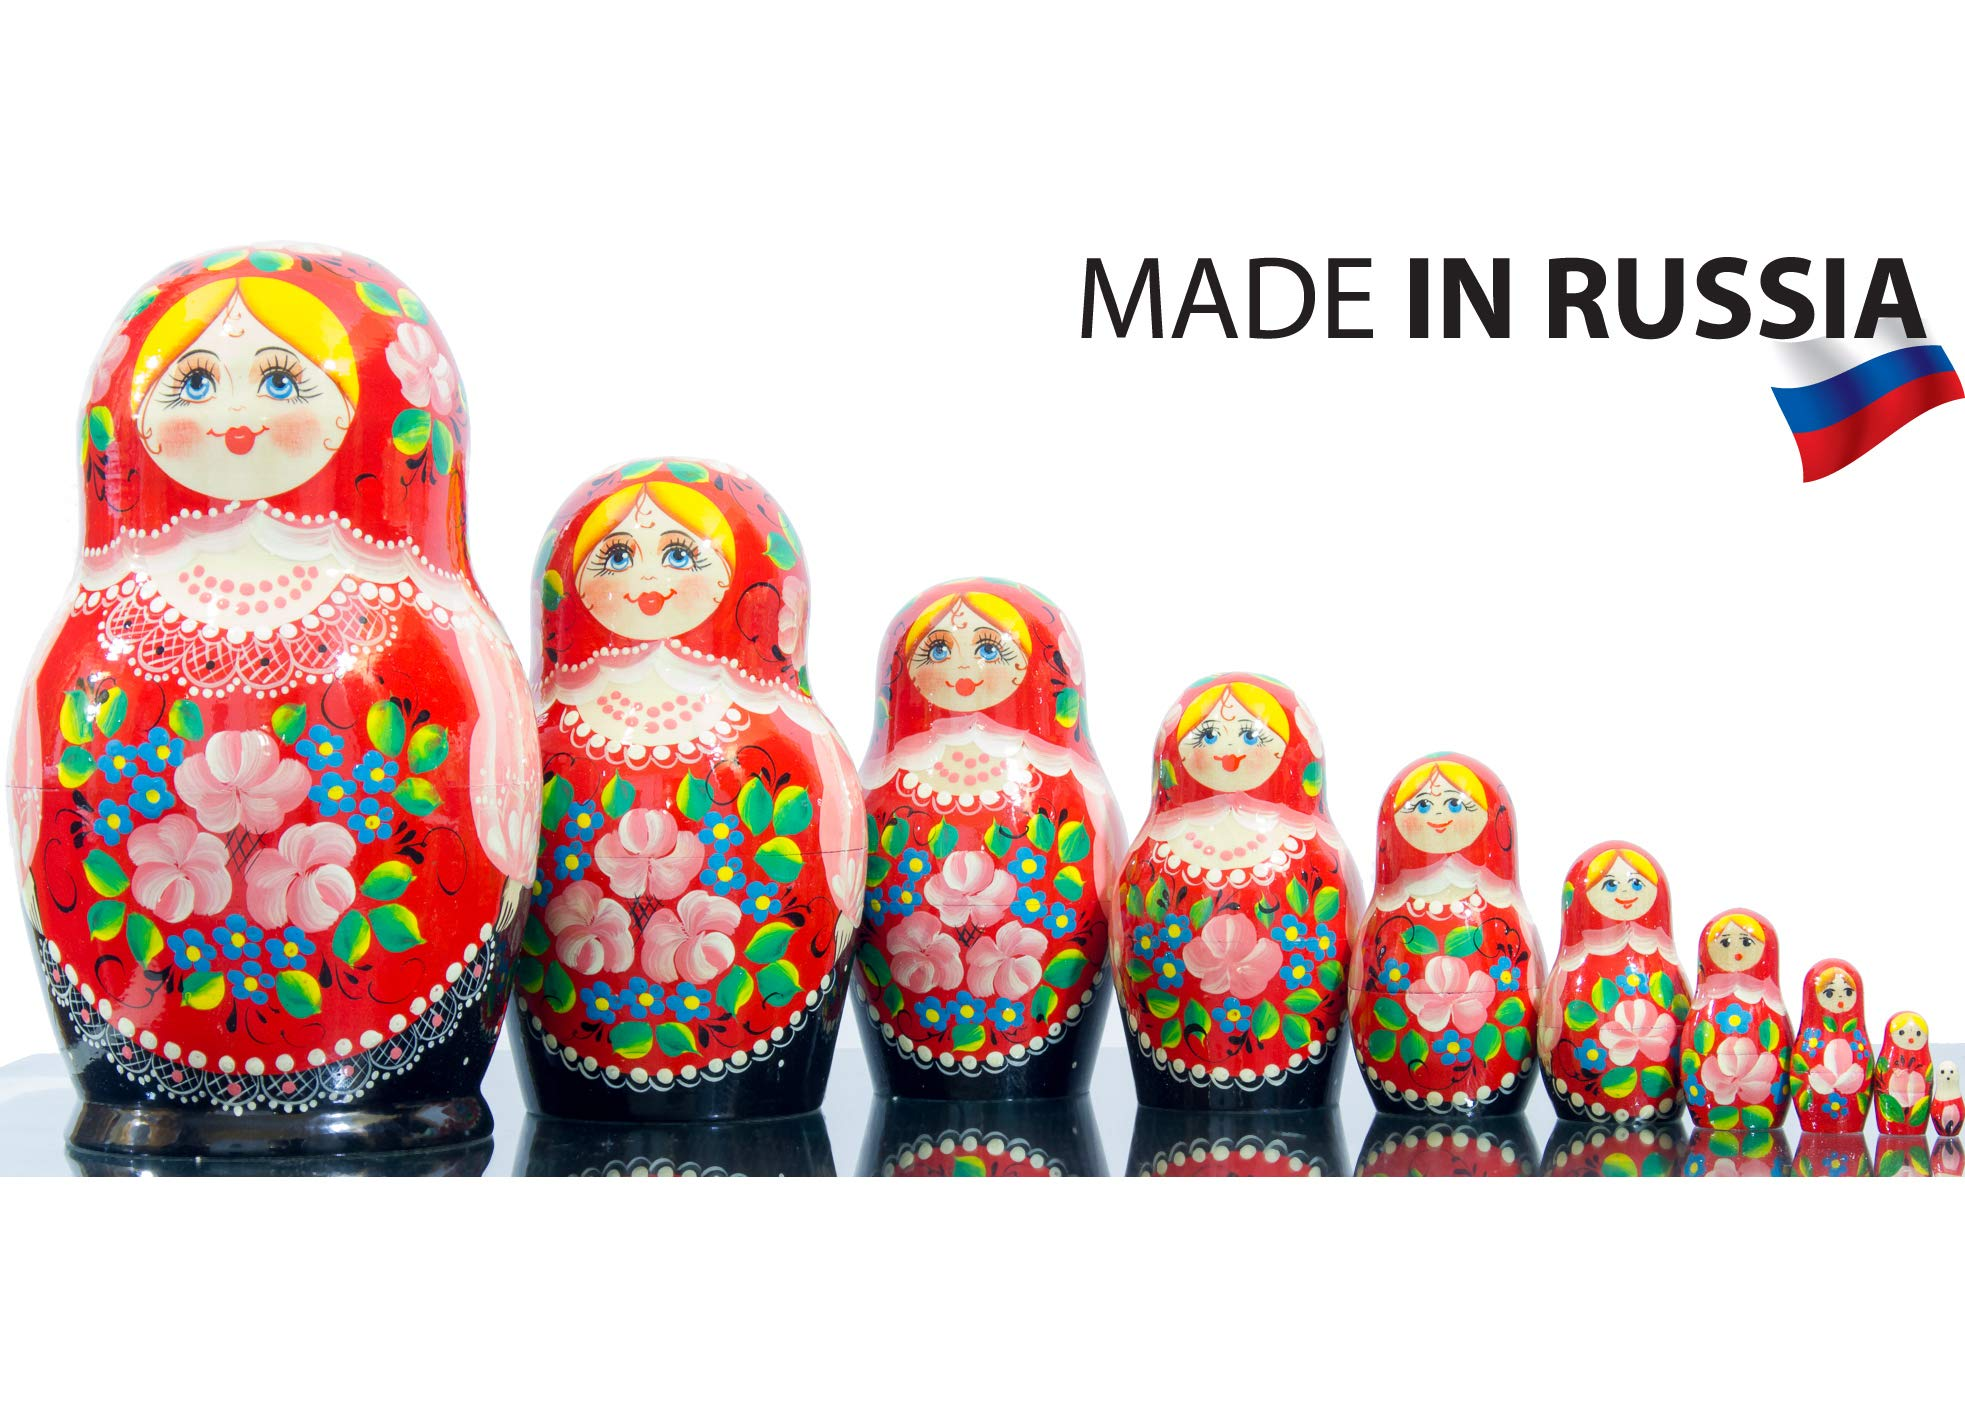 Russian Nesting Doll - Kirov - VJATKA - Hand Painted in Russia - Big Size - Wooden Decoration Gift Doll - Matryoshka Babushka (Style B, 8.25``(10 Dolls in 1)) by craftsfromrussia (Image #1)